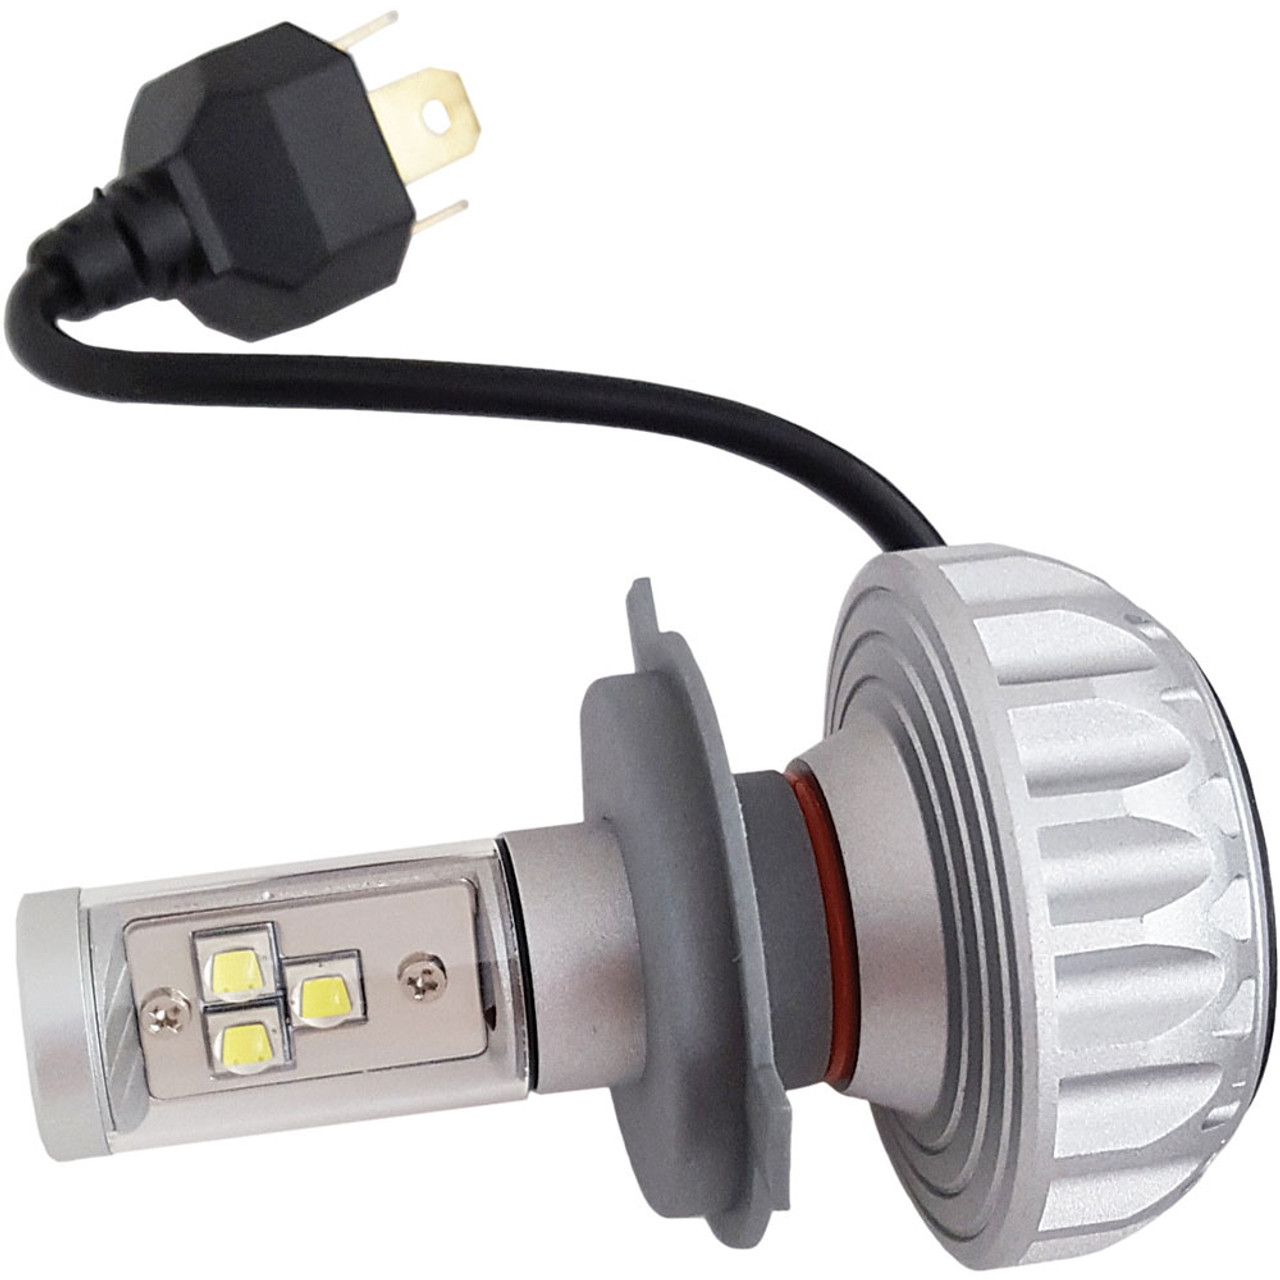 pathfinder performance h4 led headlight bulb for harley get lowered cycles [ 1000 x 1000 Pixel ]